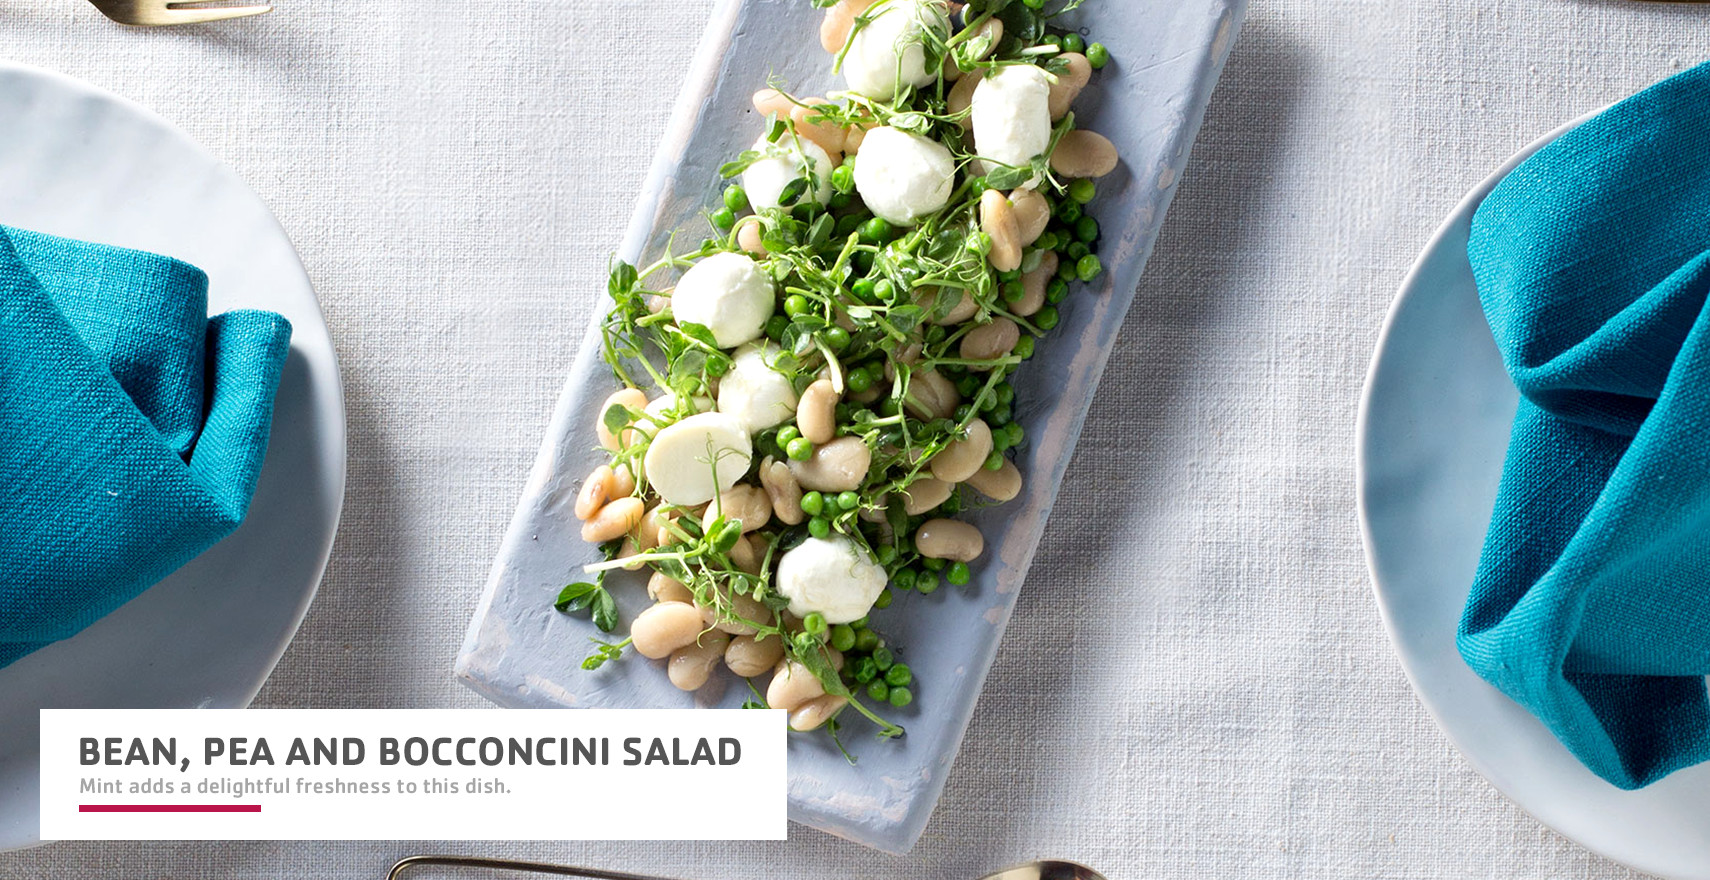 Bean pea and bocconcini salad header image.jpg